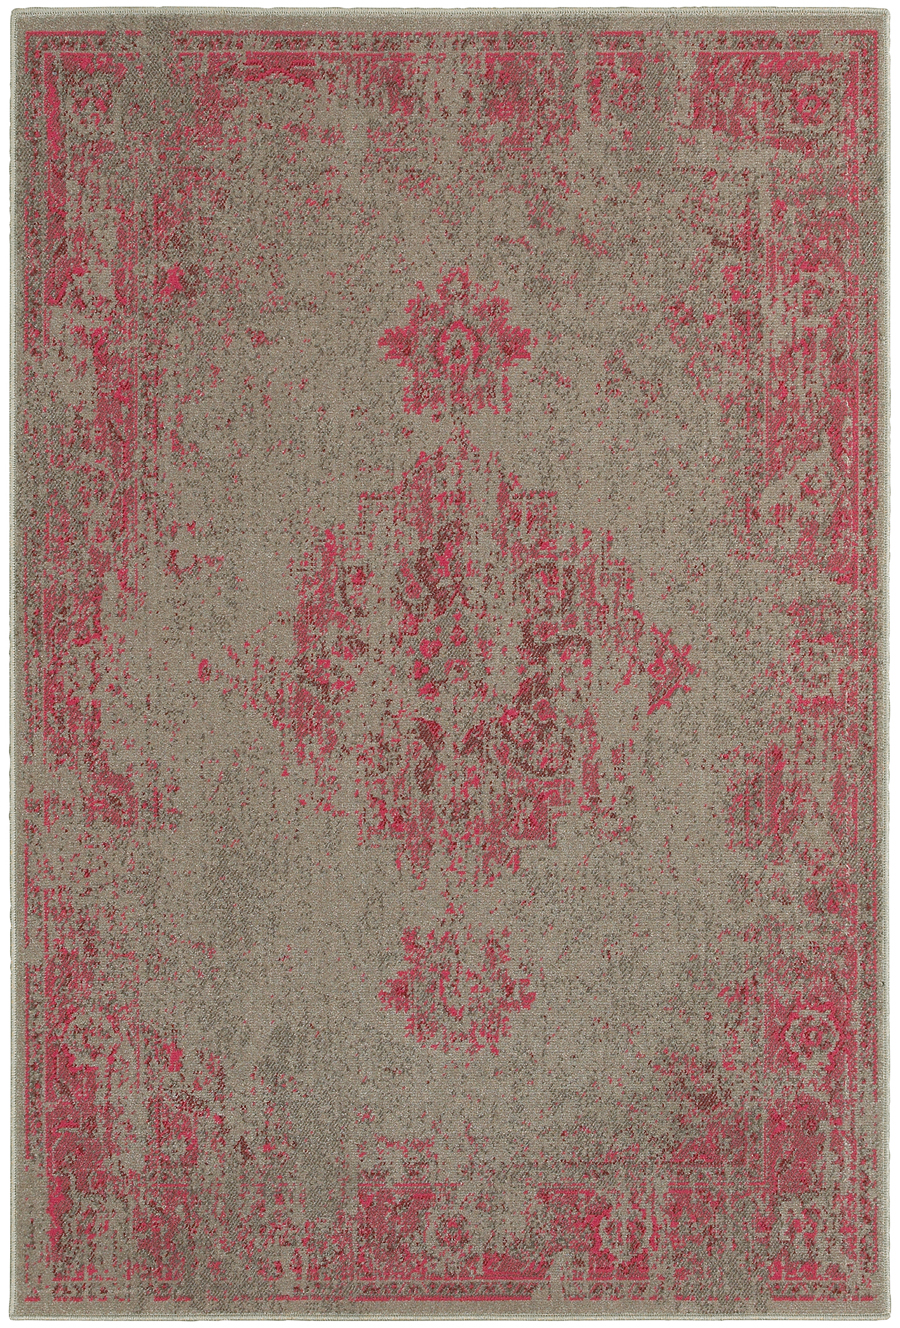 Oriental Weavers Sphinx Revival 6330F Rug